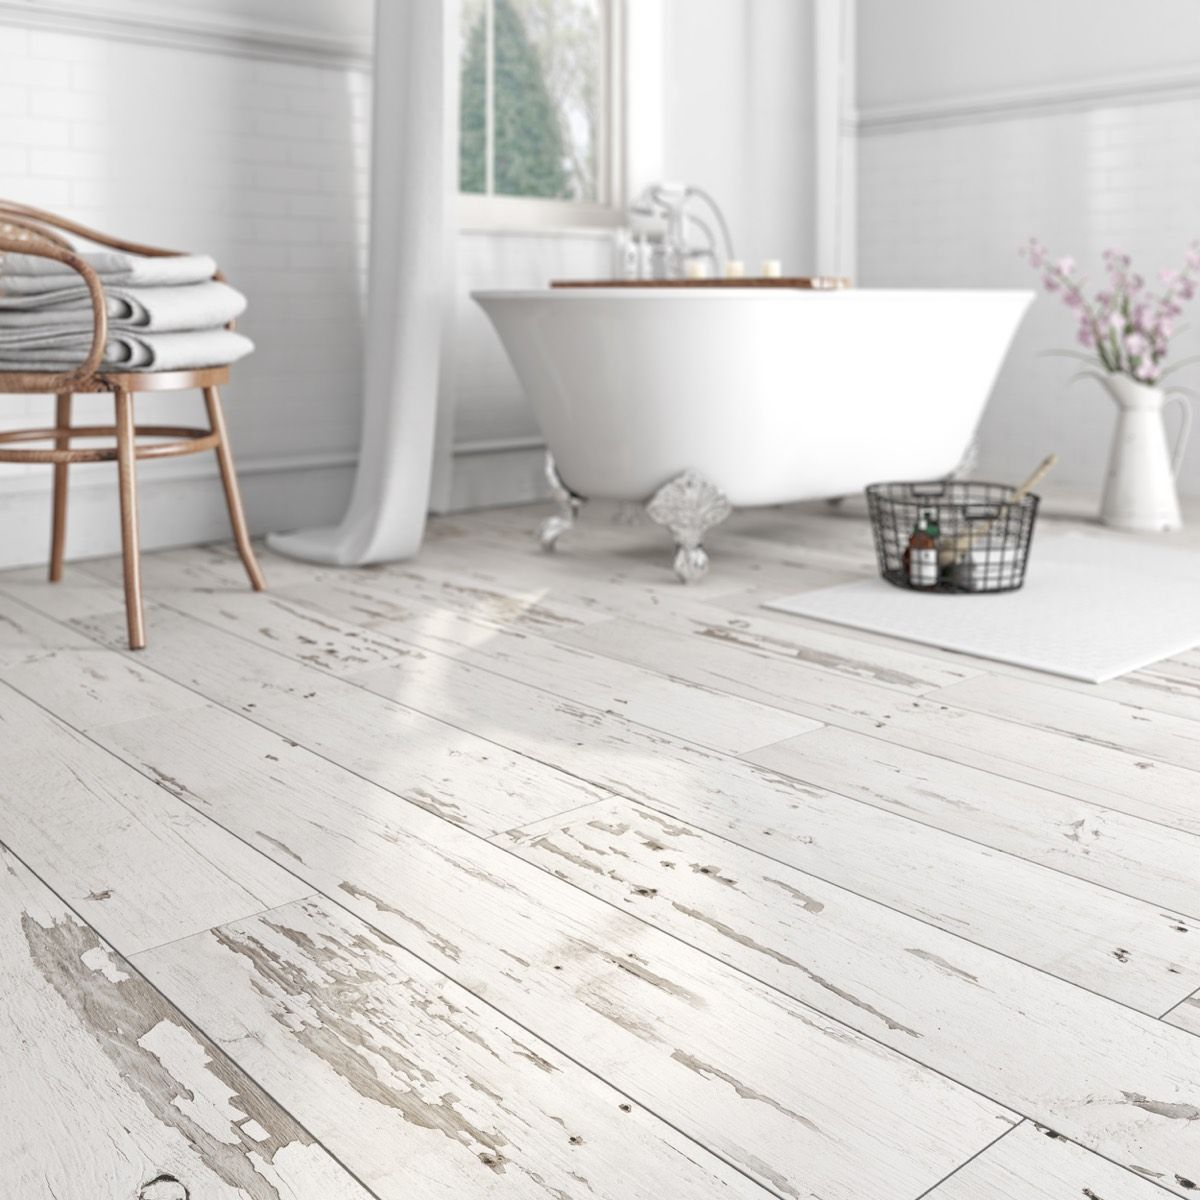 Lovely Krono Xonic Pennsylvania Waterproof Vinyl Flooring | Pinterest intended for Bathroom Flooring Vinyl